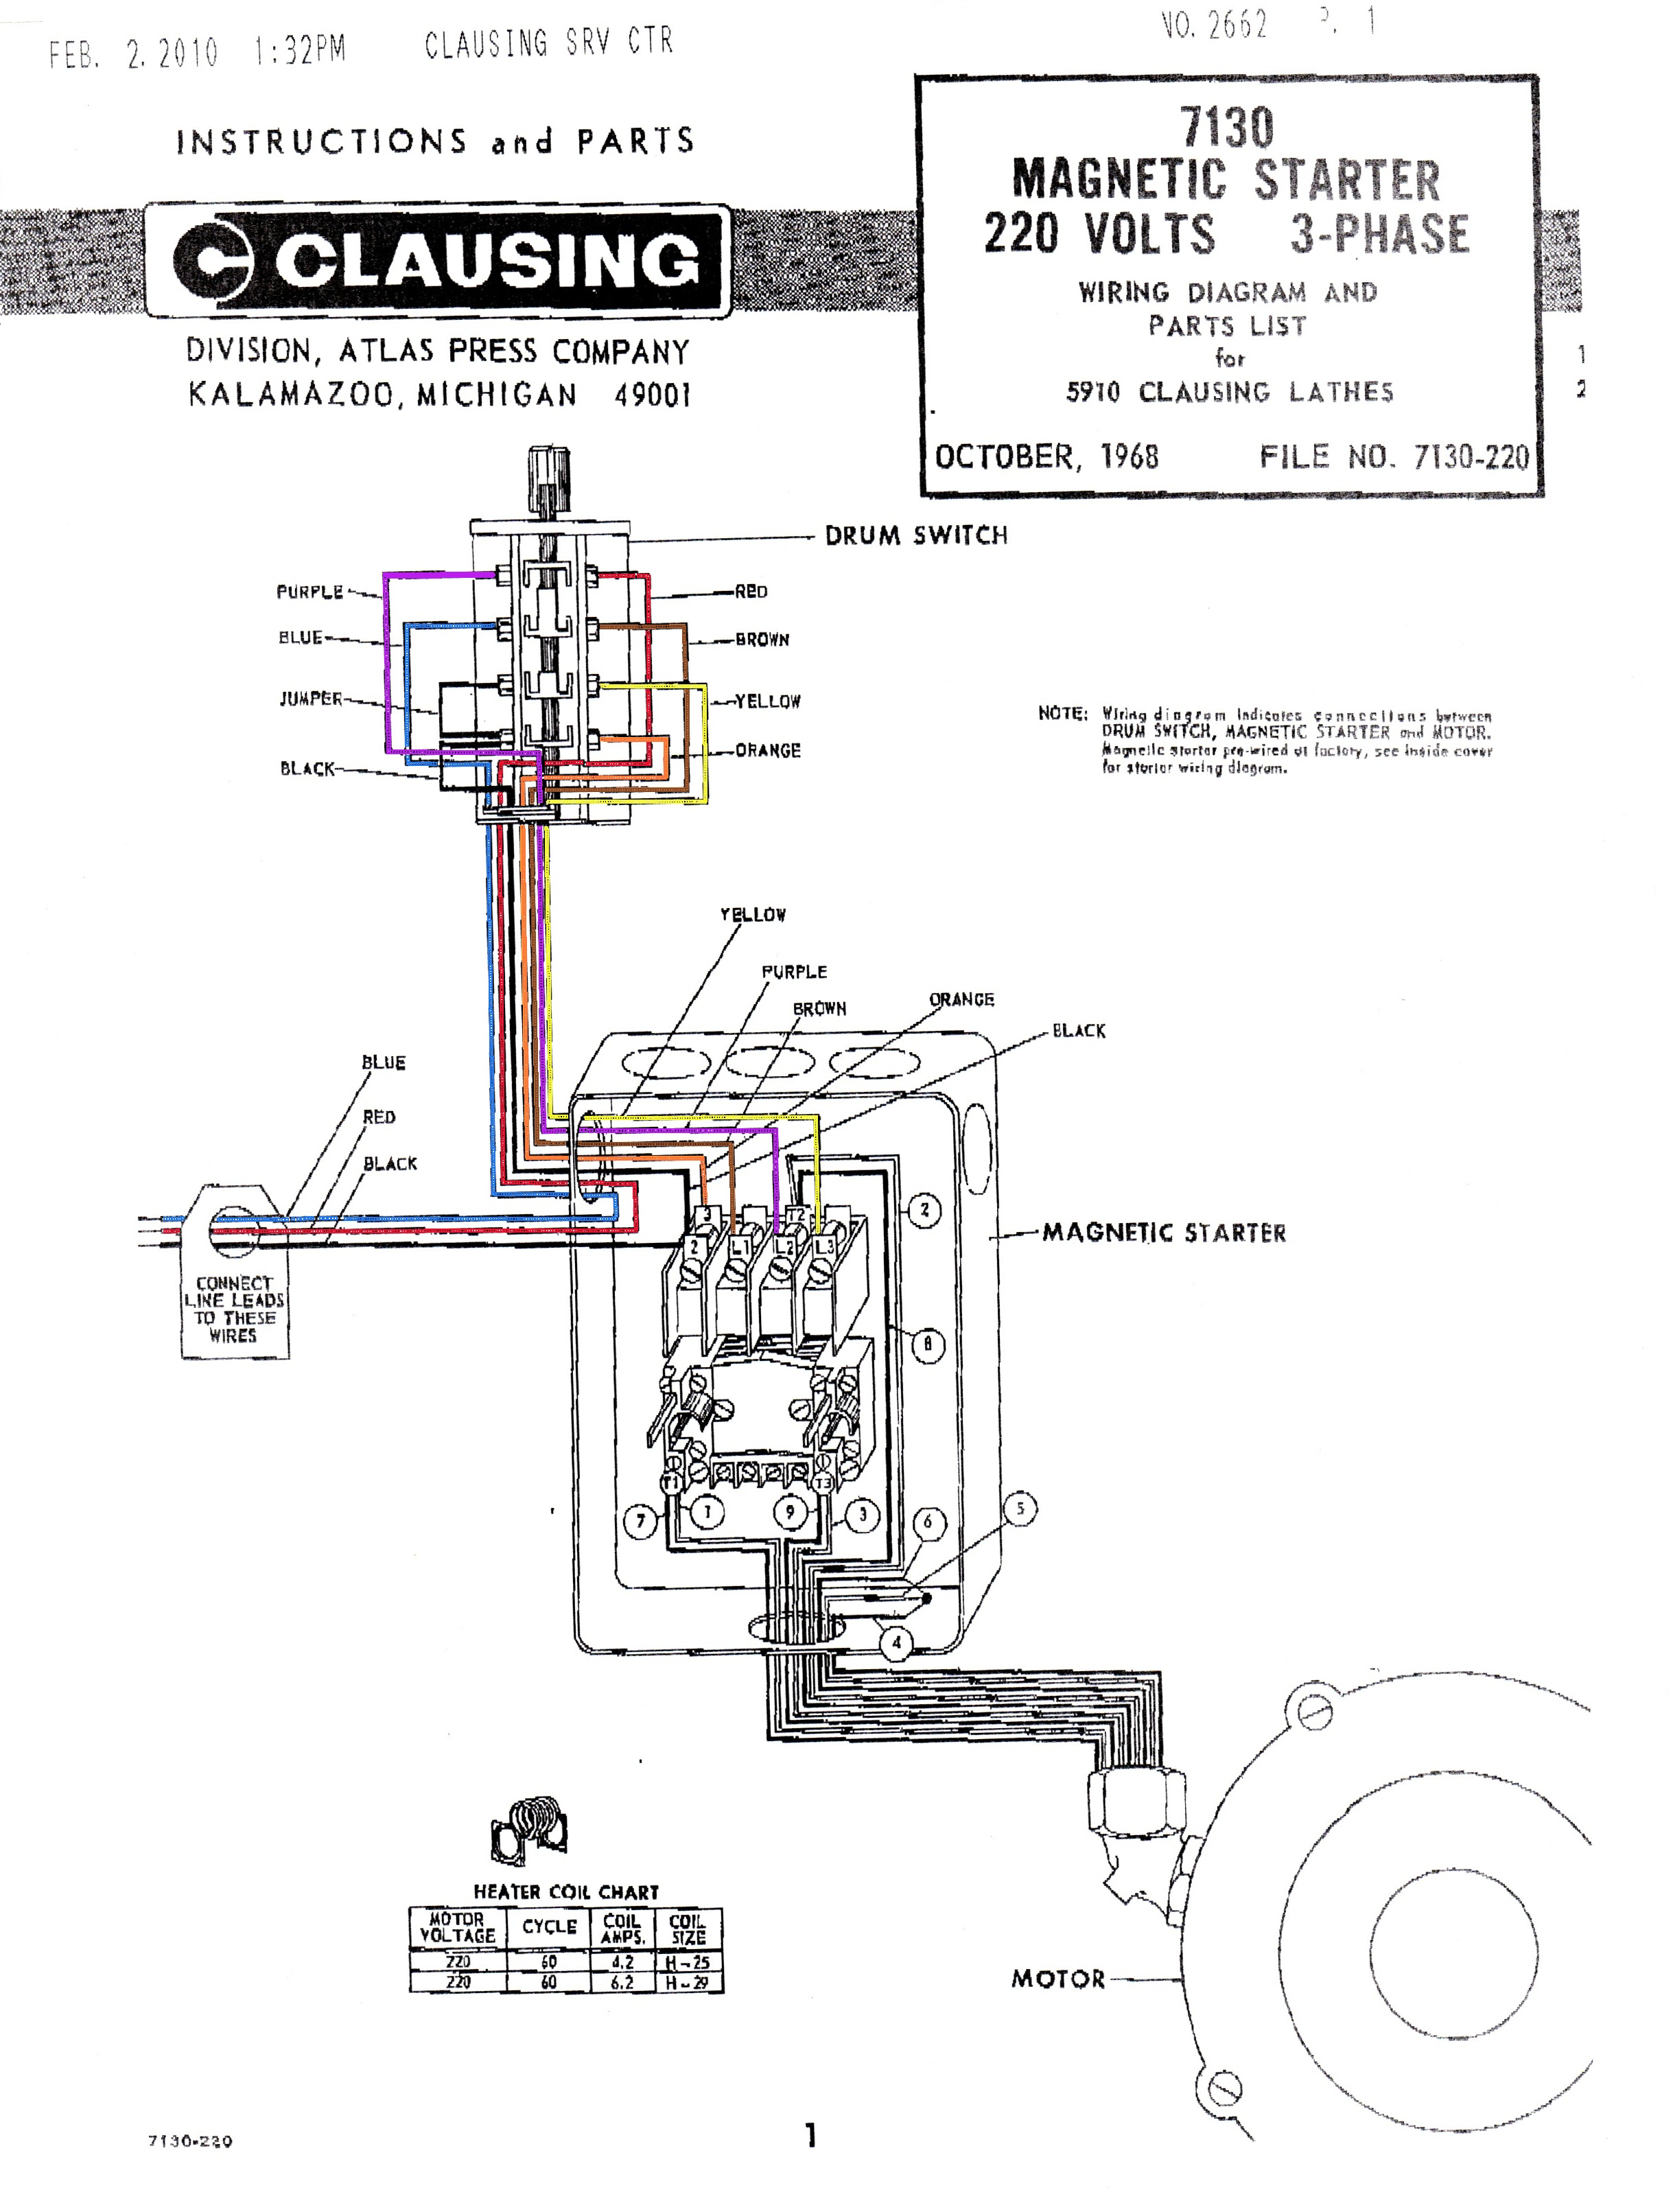 jet mill wiring diagram online circuit wiring diagram u2022 rh electrobuddha co uk